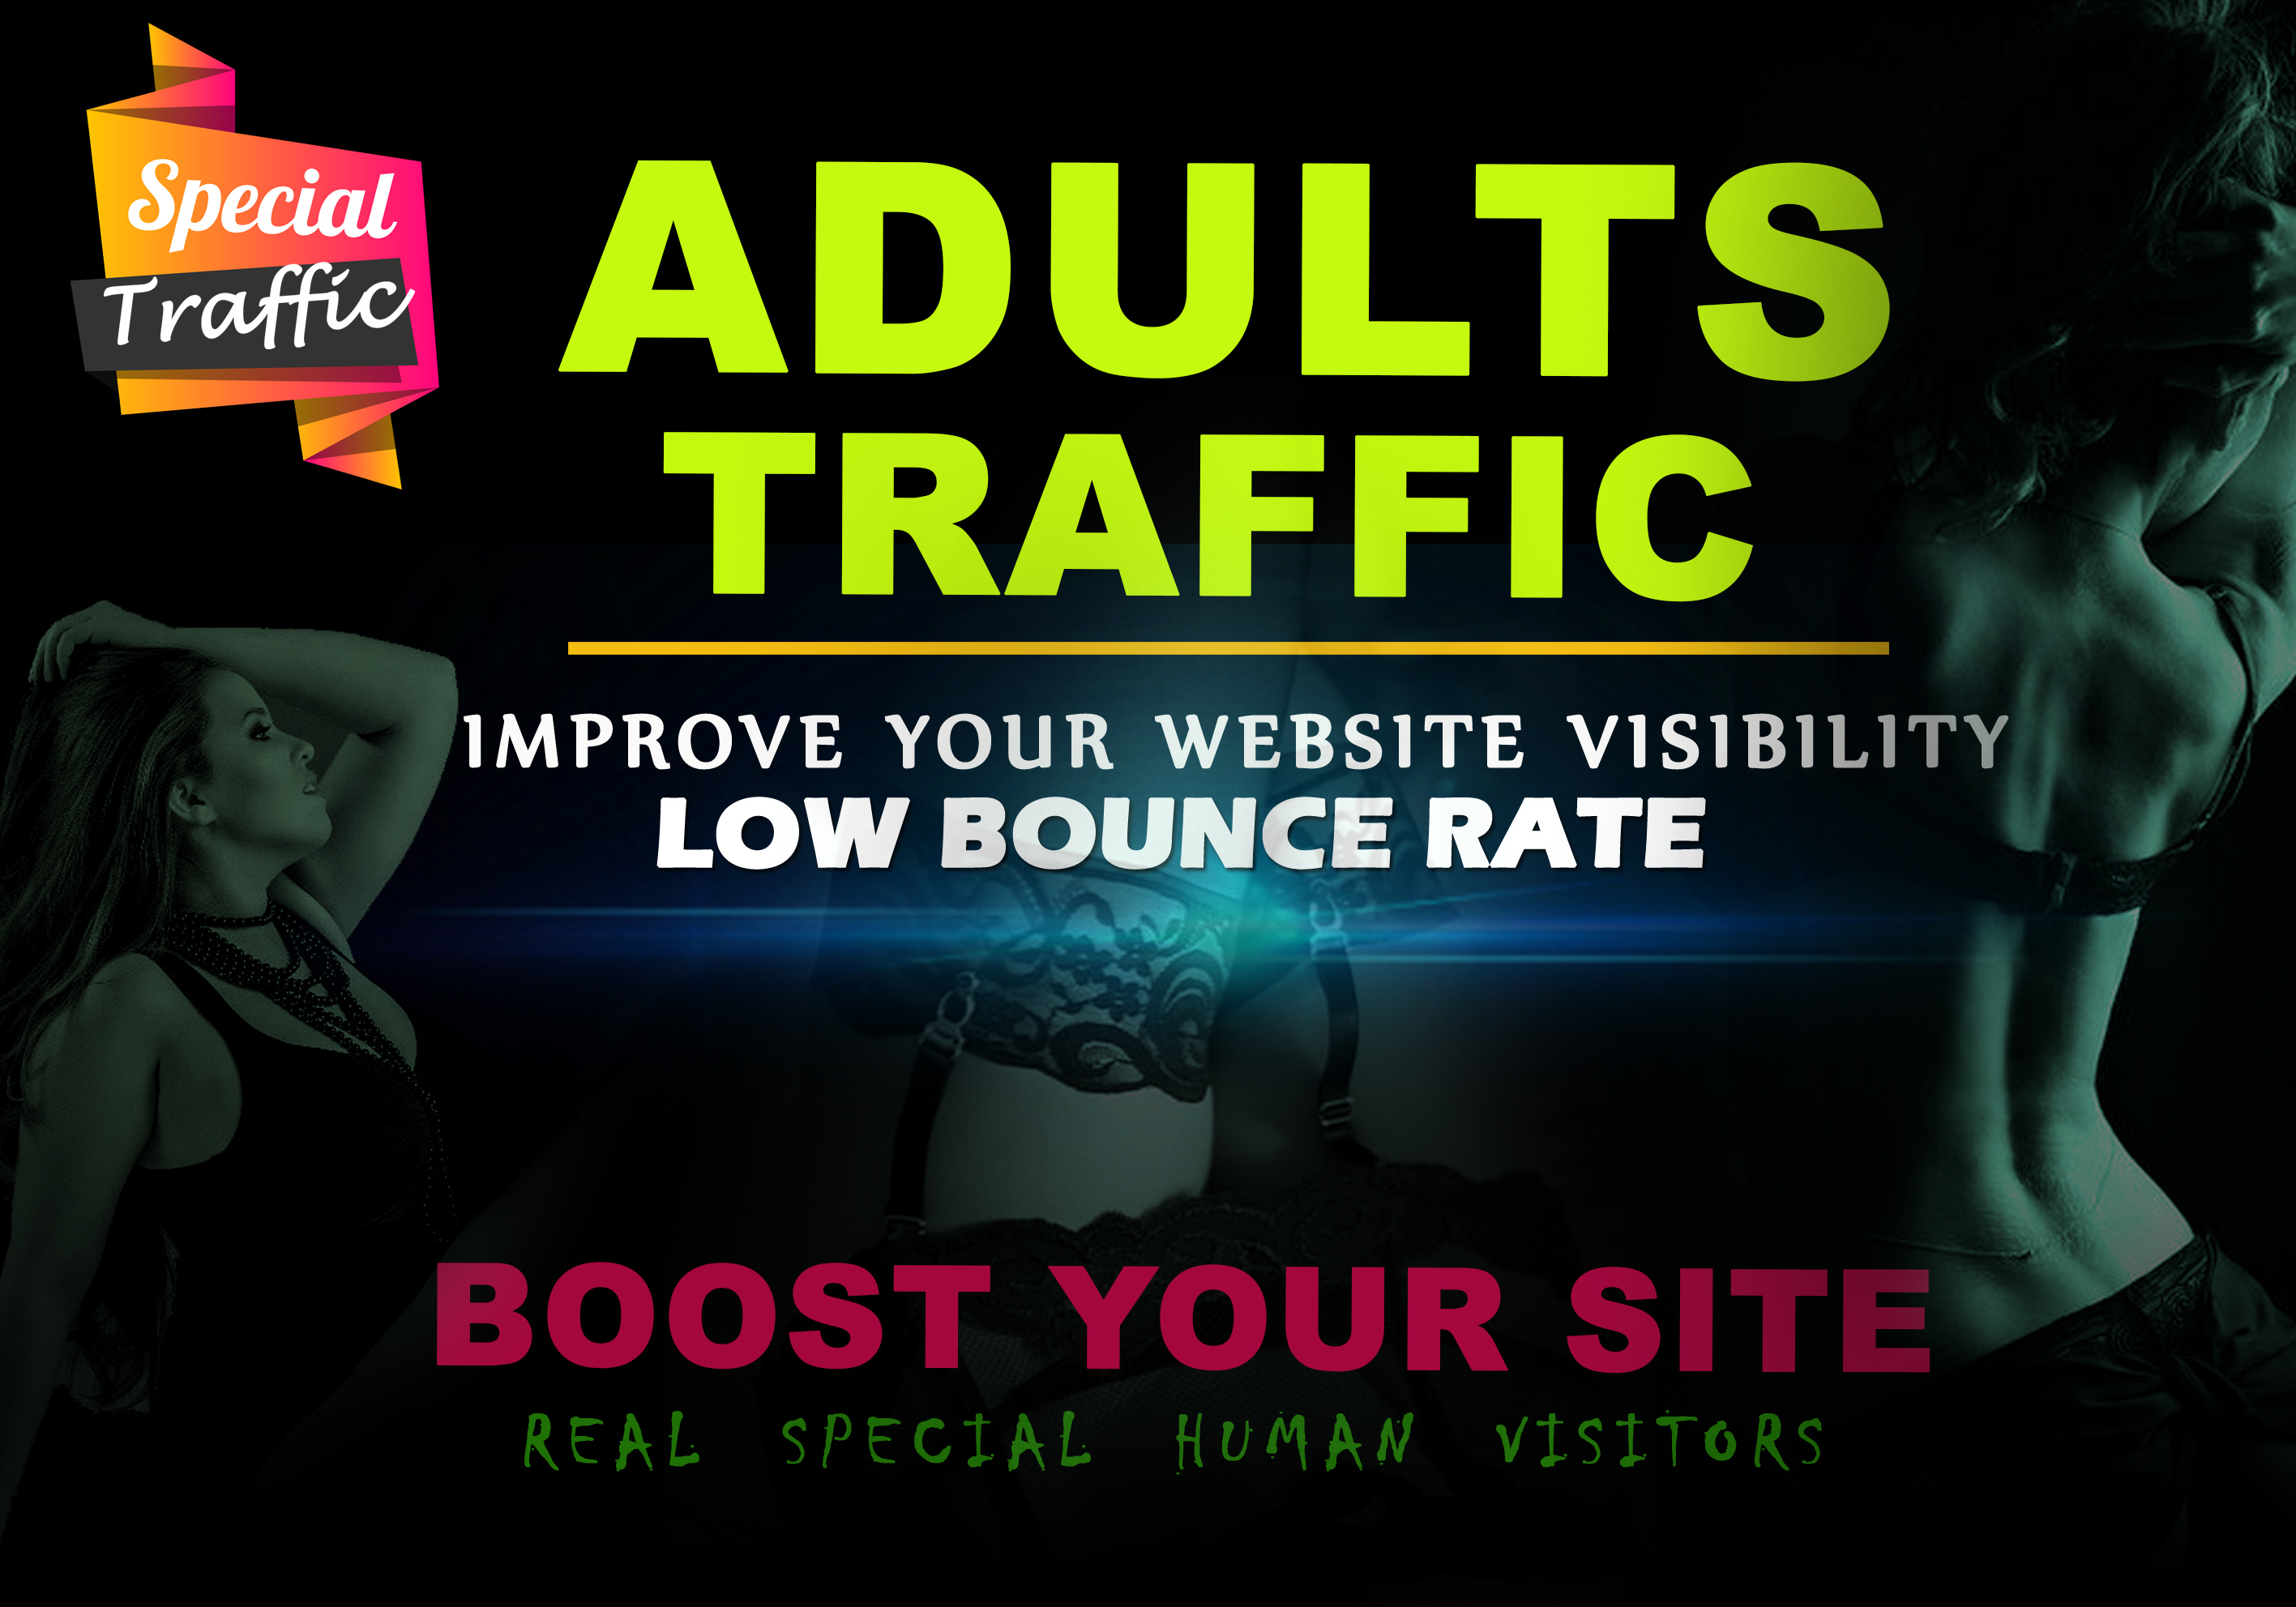 20,000 adult traffic visitors to your any kind of porn gambling adults website